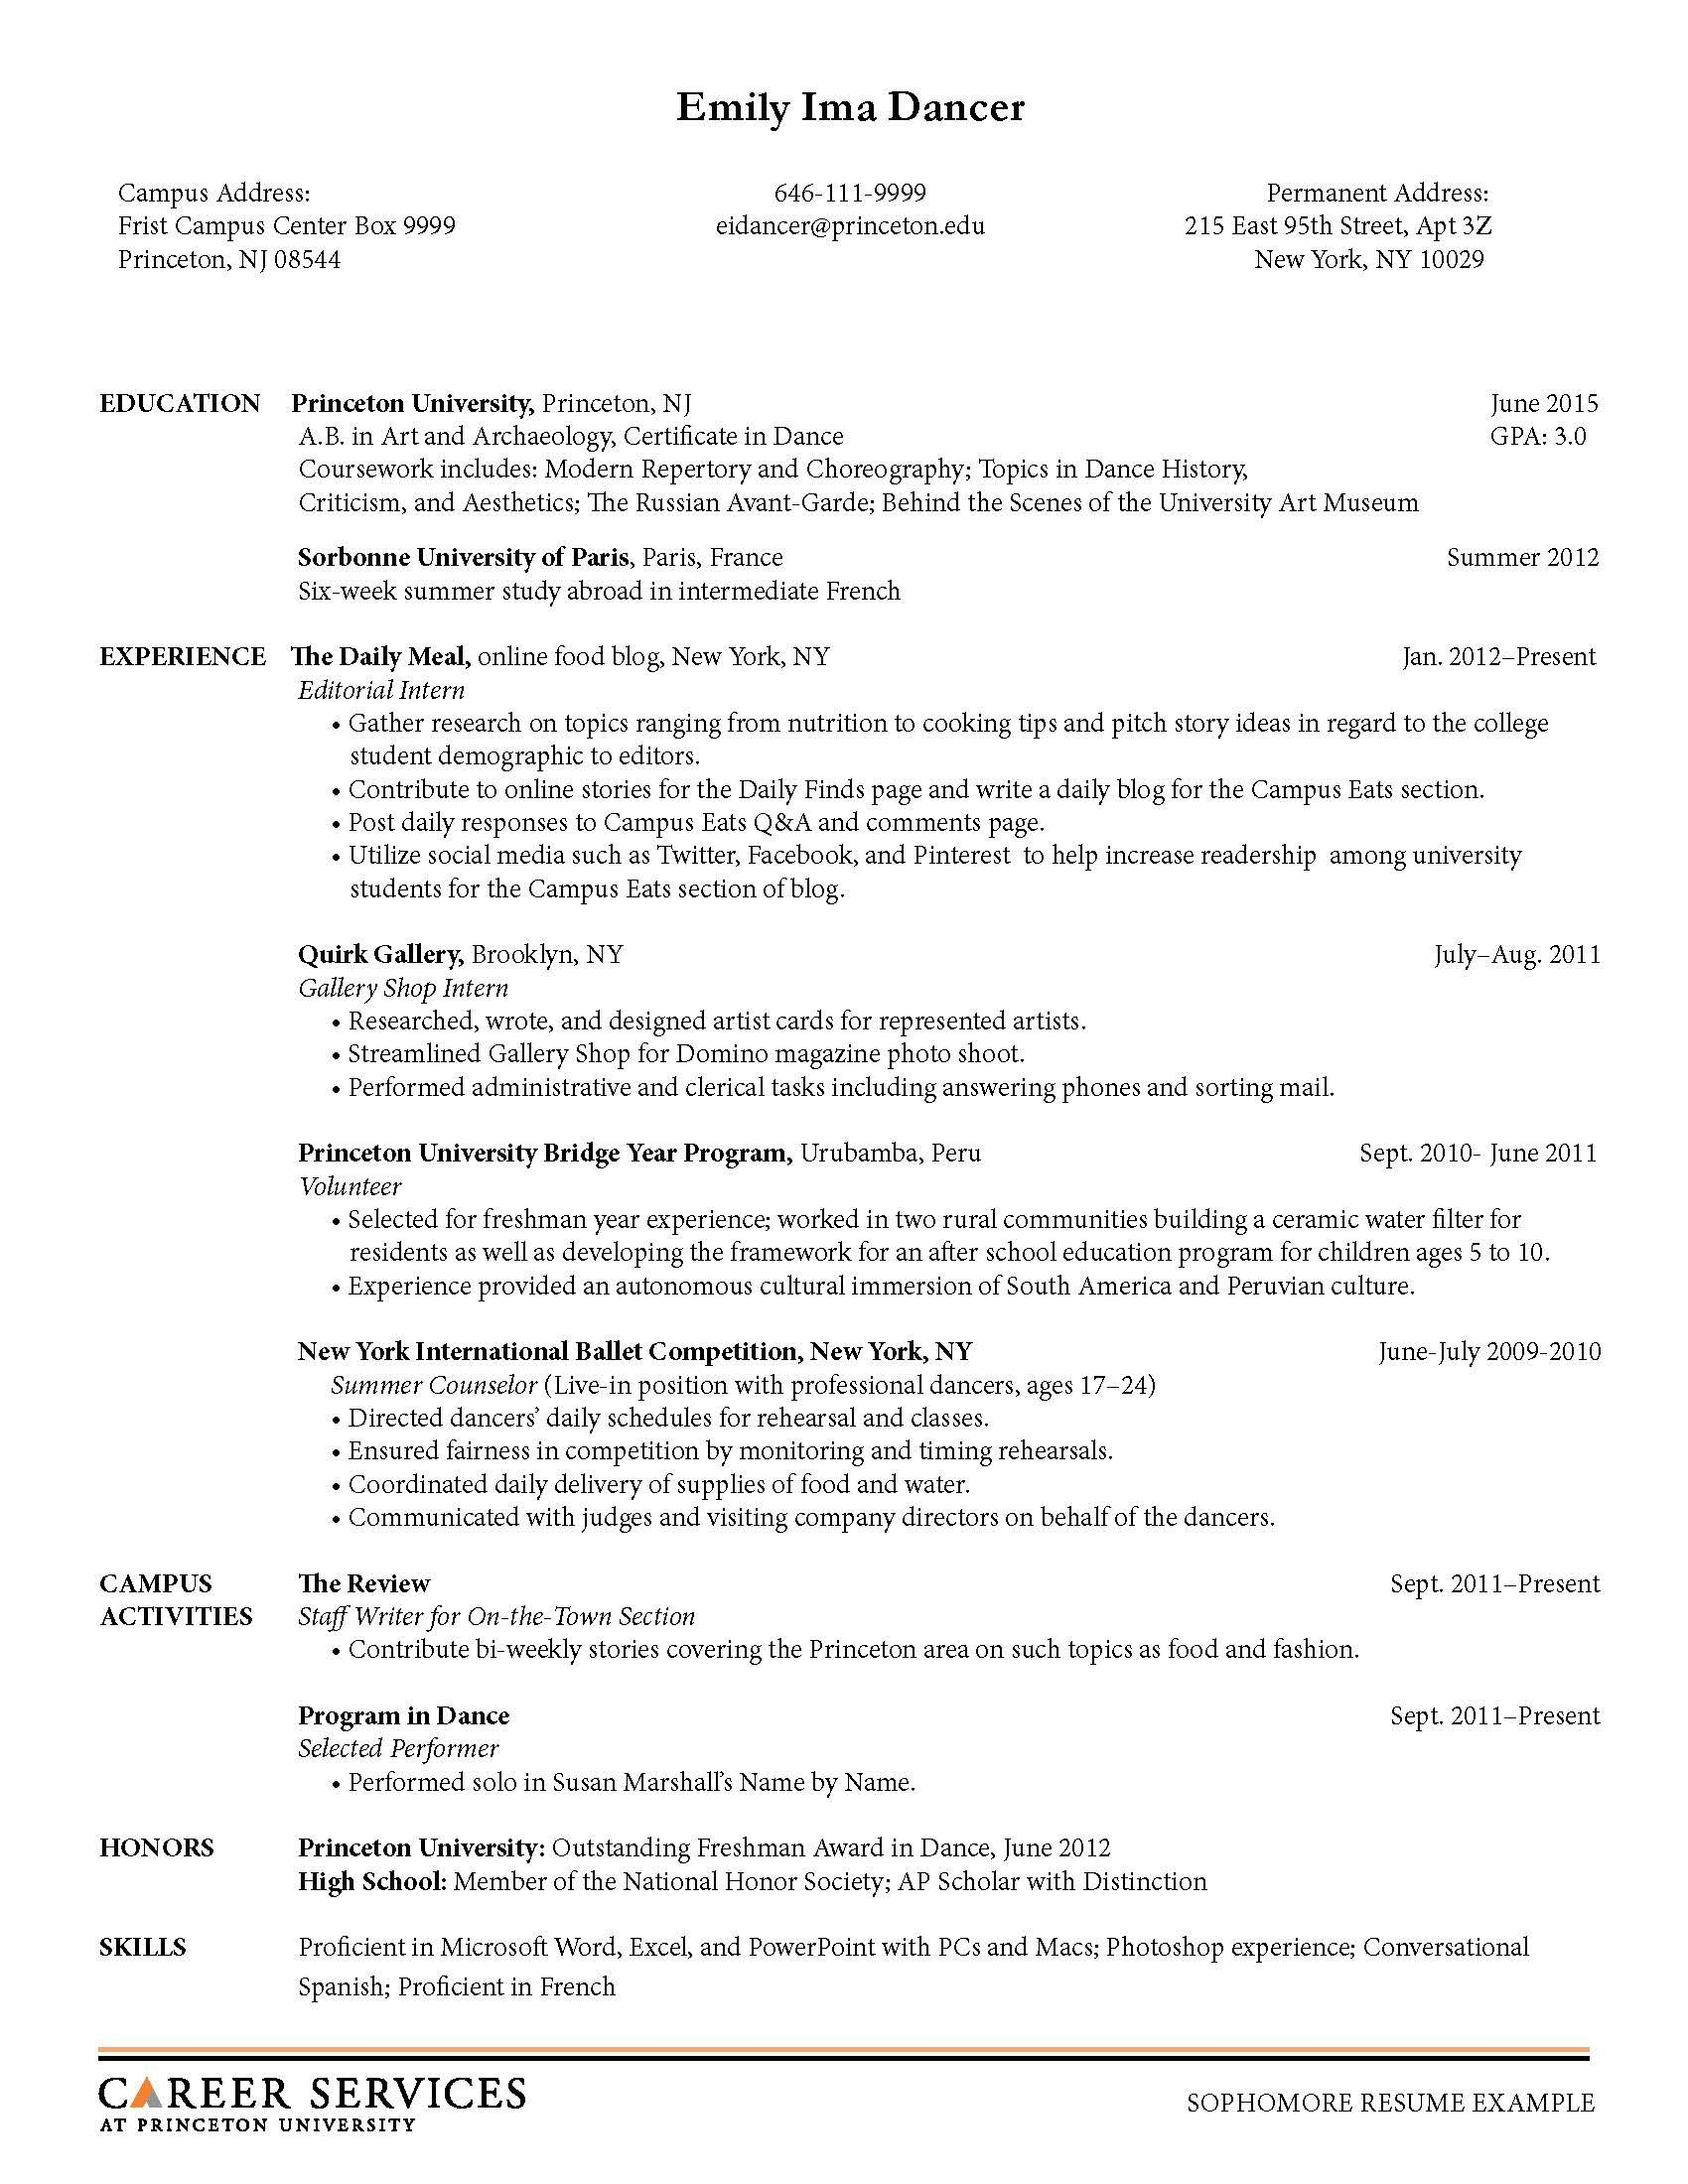 Opposenewapstandardsus  Unique Sample Resume Resume And Career On Pinterest With Fair Machine Operator Resume Sample Besides How To Email A Resume And Cover Letter Furthermore Corrections Officer Resume With Charming Actually Free Resume Builder Also Resume Builder For College Students In Addition Sample Student Resumes And Education Section On Resume As Well As Resume Outline Template Additionally Free Resume Editor From Pinterestcom With Opposenewapstandardsus  Fair Sample Resume Resume And Career On Pinterest With Charming Machine Operator Resume Sample Besides How To Email A Resume And Cover Letter Furthermore Corrections Officer Resume And Unique Actually Free Resume Builder Also Resume Builder For College Students In Addition Sample Student Resumes From Pinterestcom